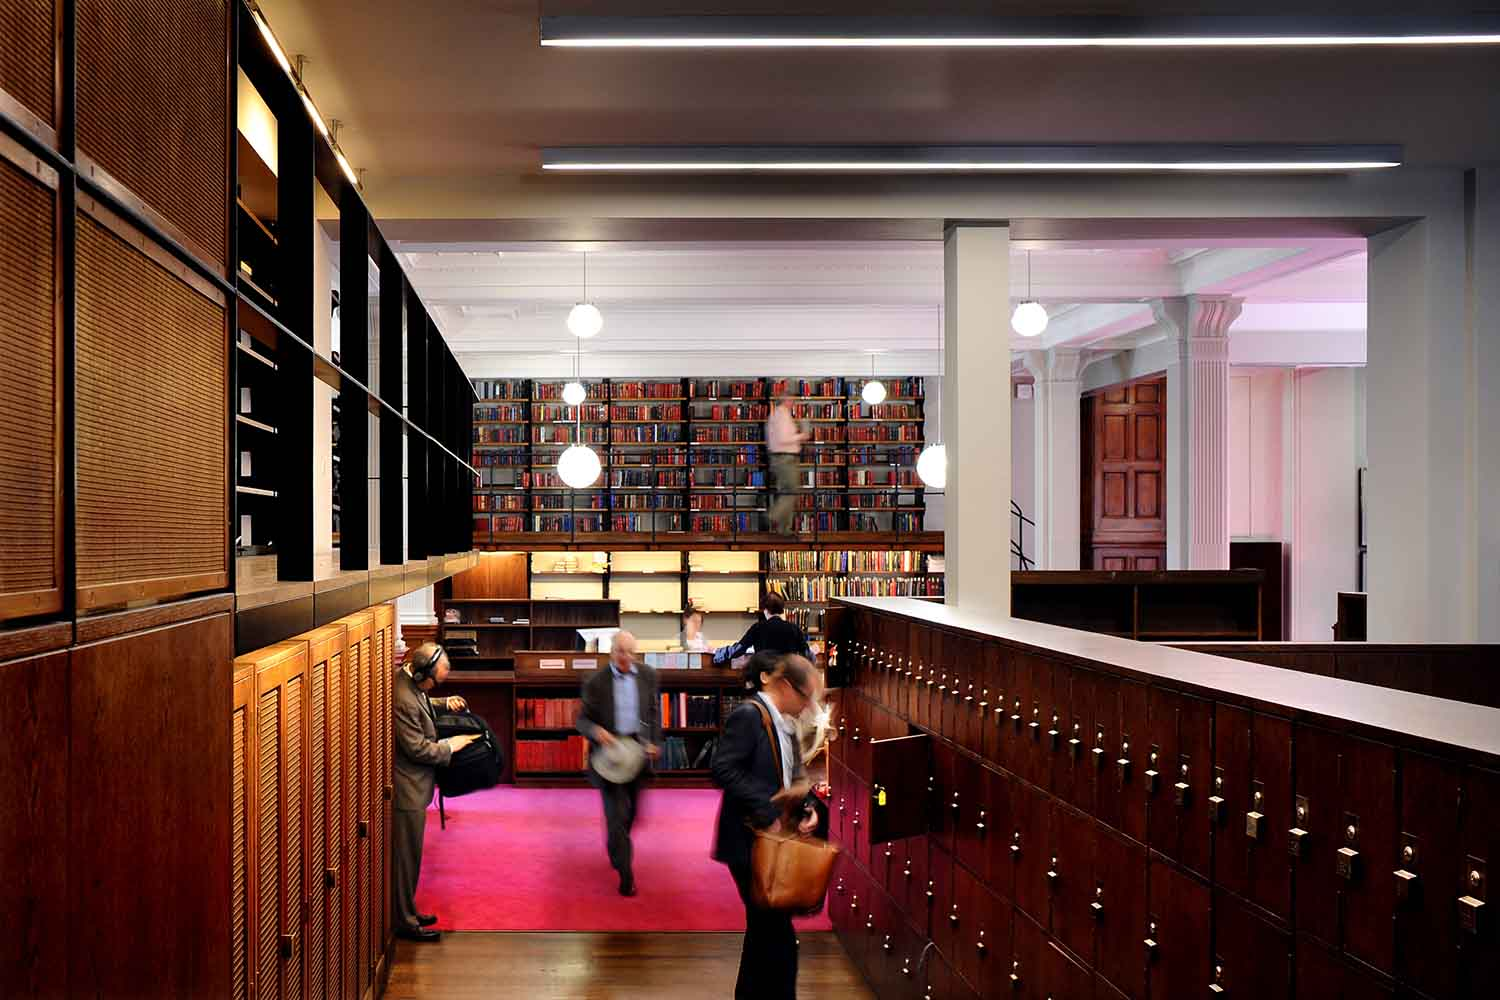 bespoke libary furniture for the London Library